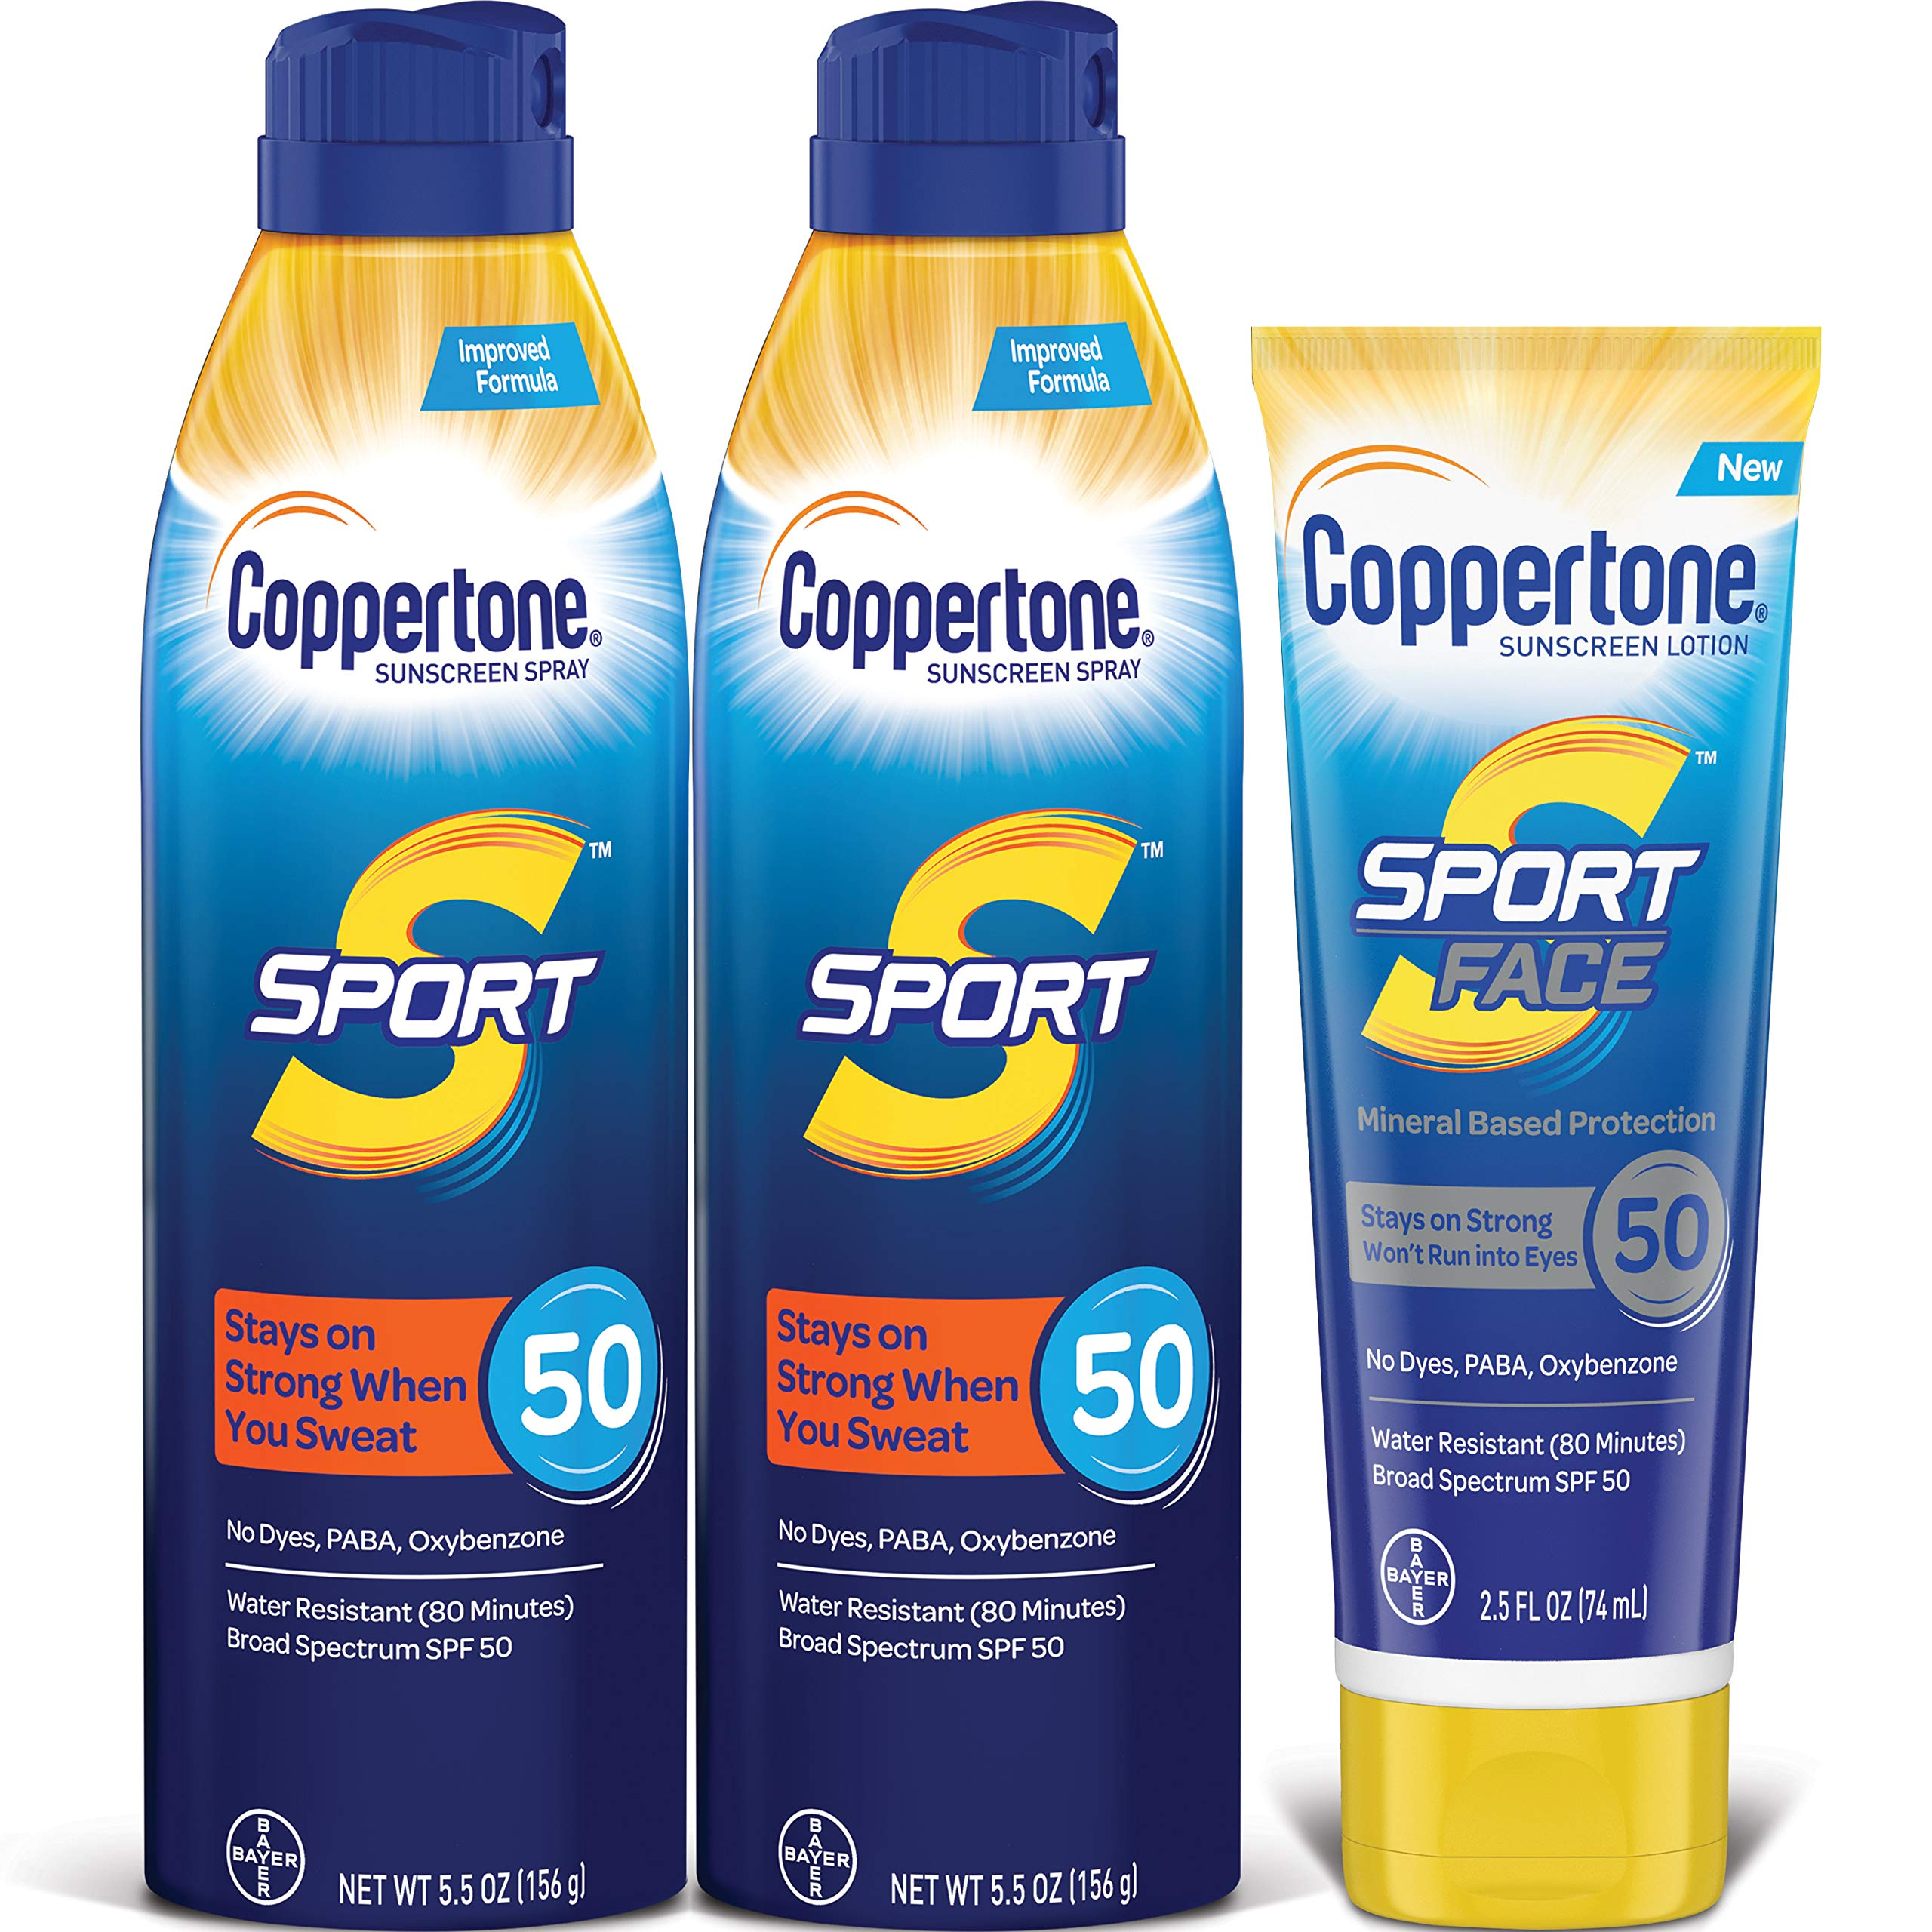 Coppertone SPORT SPF 50 Sunscreen Spray + SPORT Face SPF 50 Mineral Based Sunscreen Lotion Multipack (Two 5.5 Ounce Sprays + One 2.5 FL Ounce Lotion)